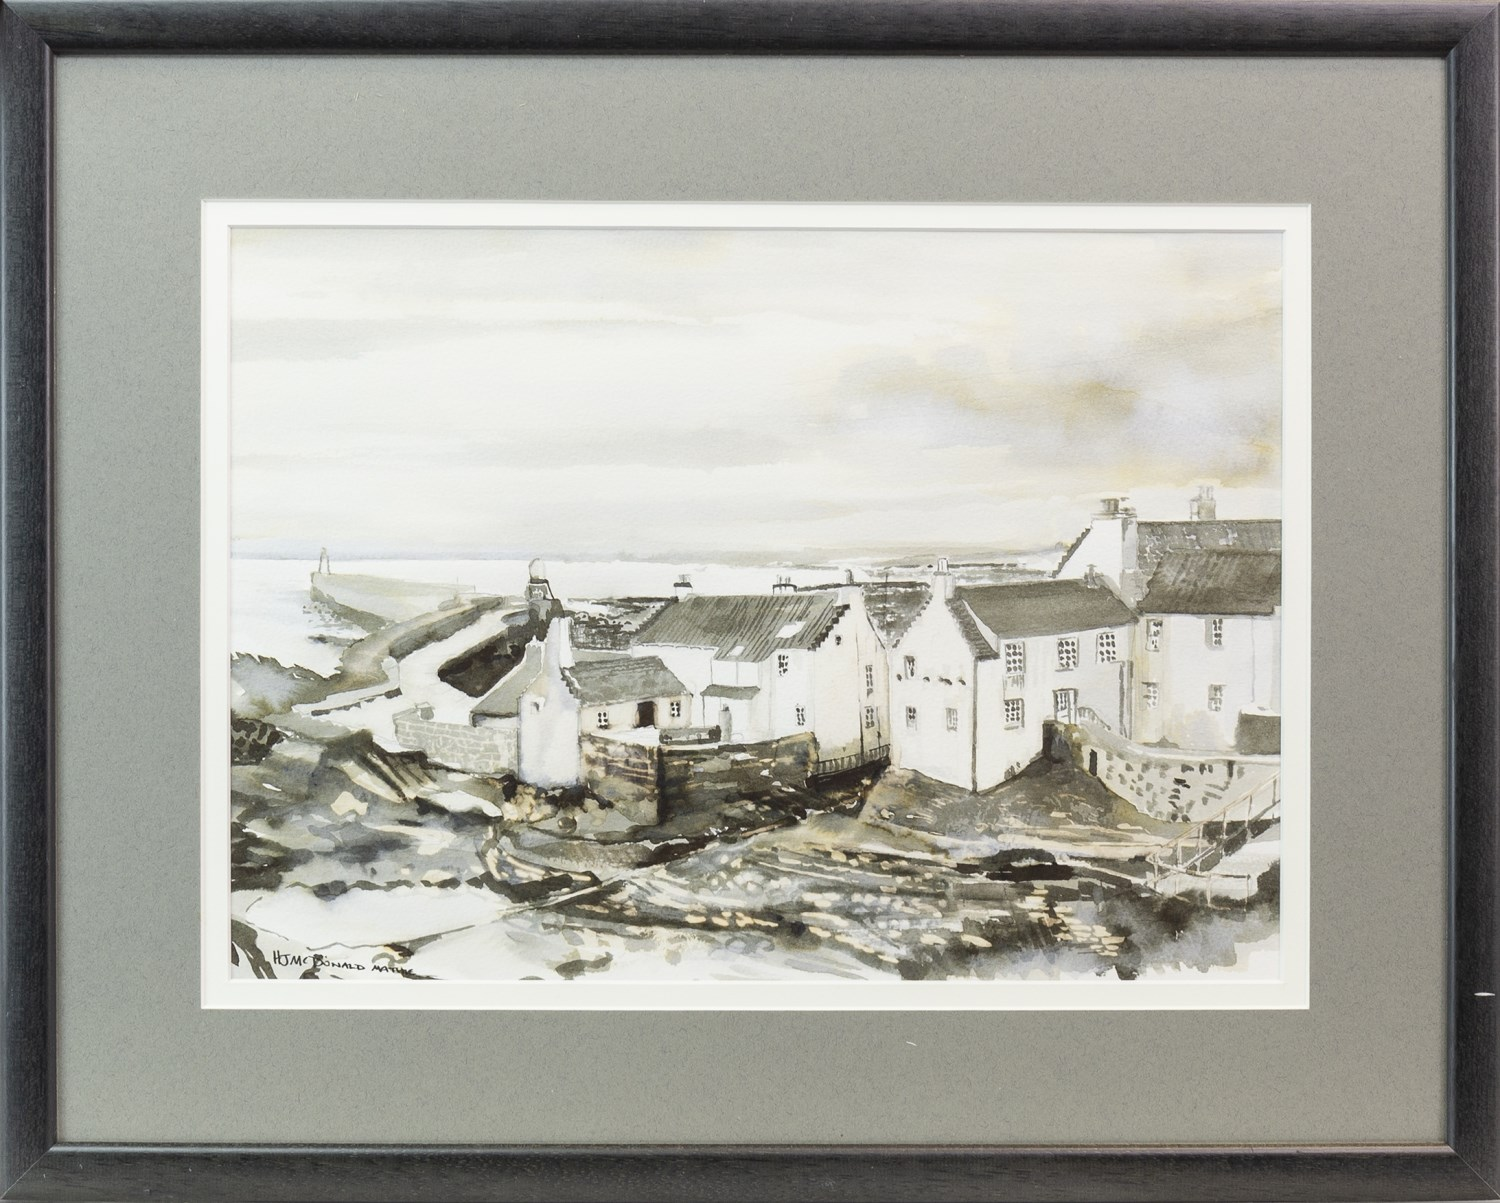 Lot 116 - PITTENWEEM, INK AND WASH BY HELEN MCDONALD MATHIE